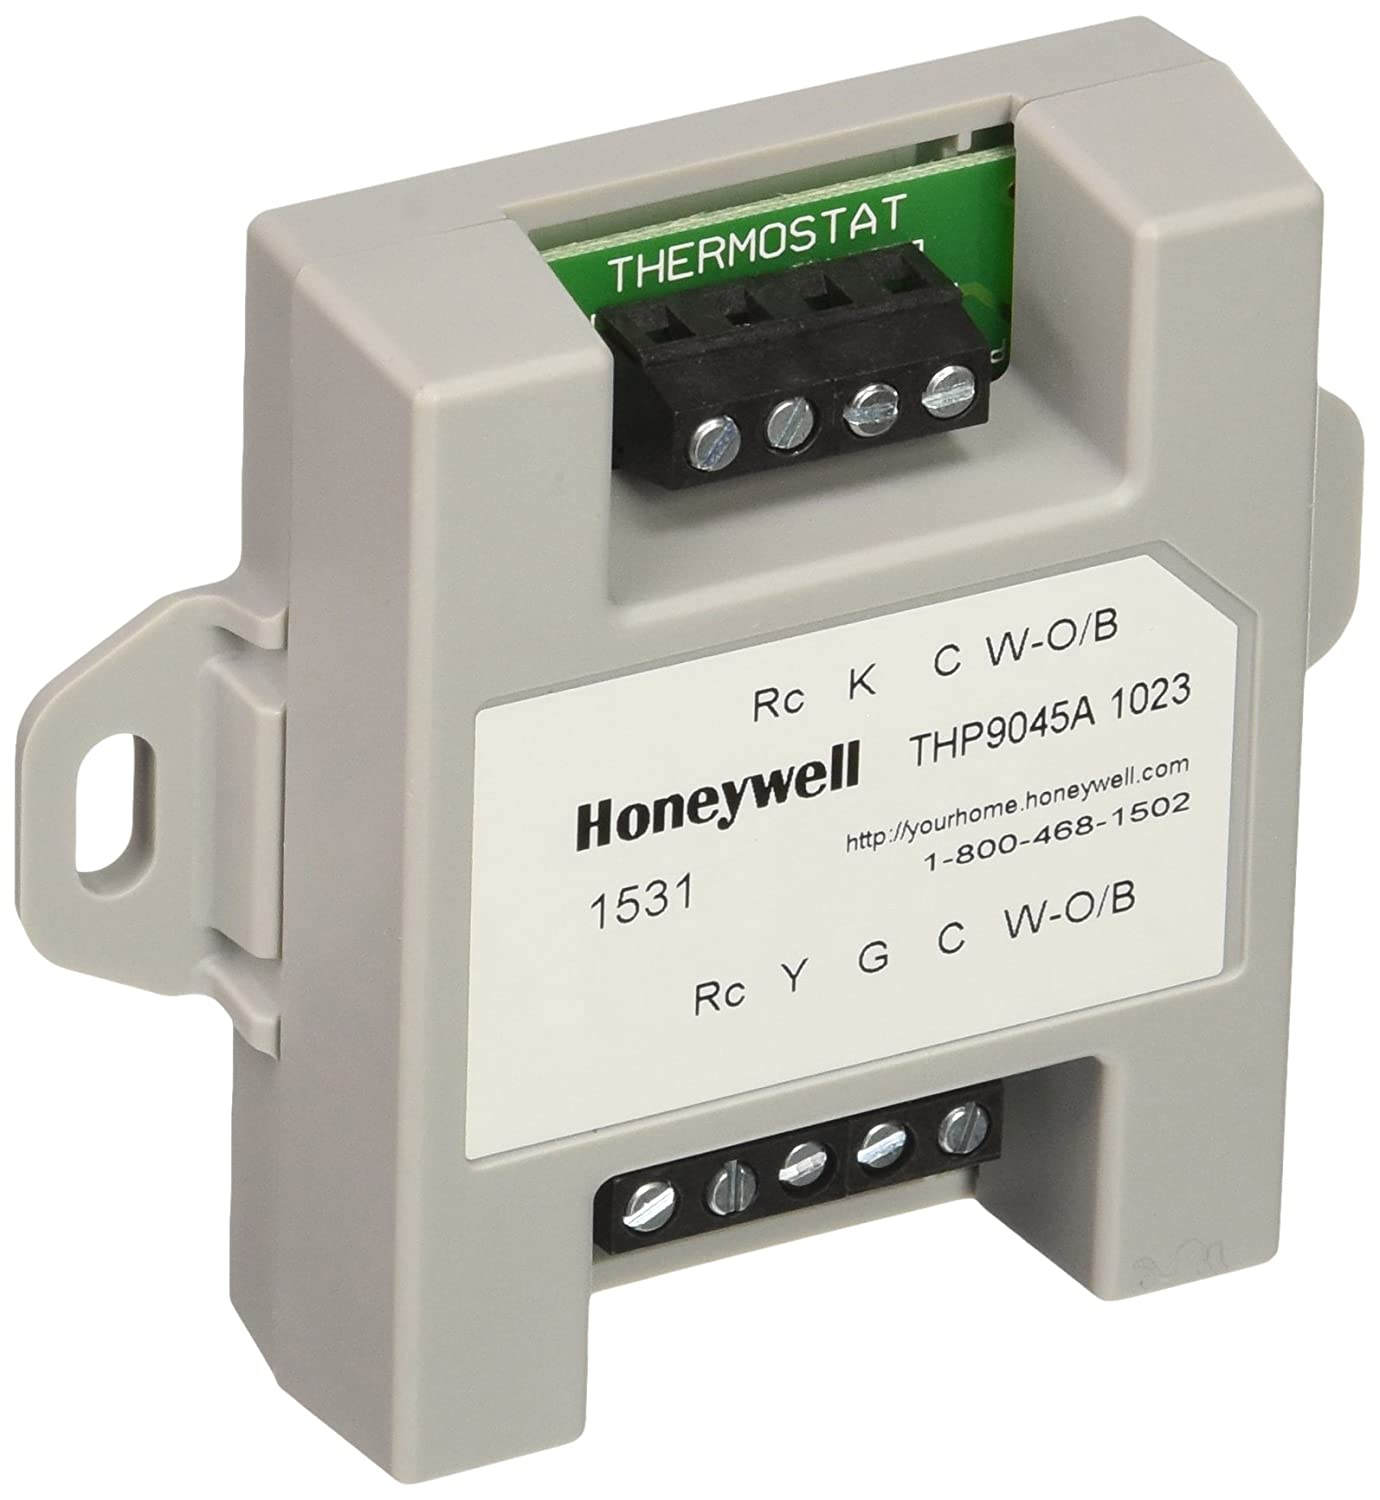 Honeywell thp9045a1023 wiresaver wiring module for thermostat on honeywell 9000 thermostat wiring diagram Ruud Heat Pump Wiring Diagram Honeywell Chronotherm III Wiring Diagram